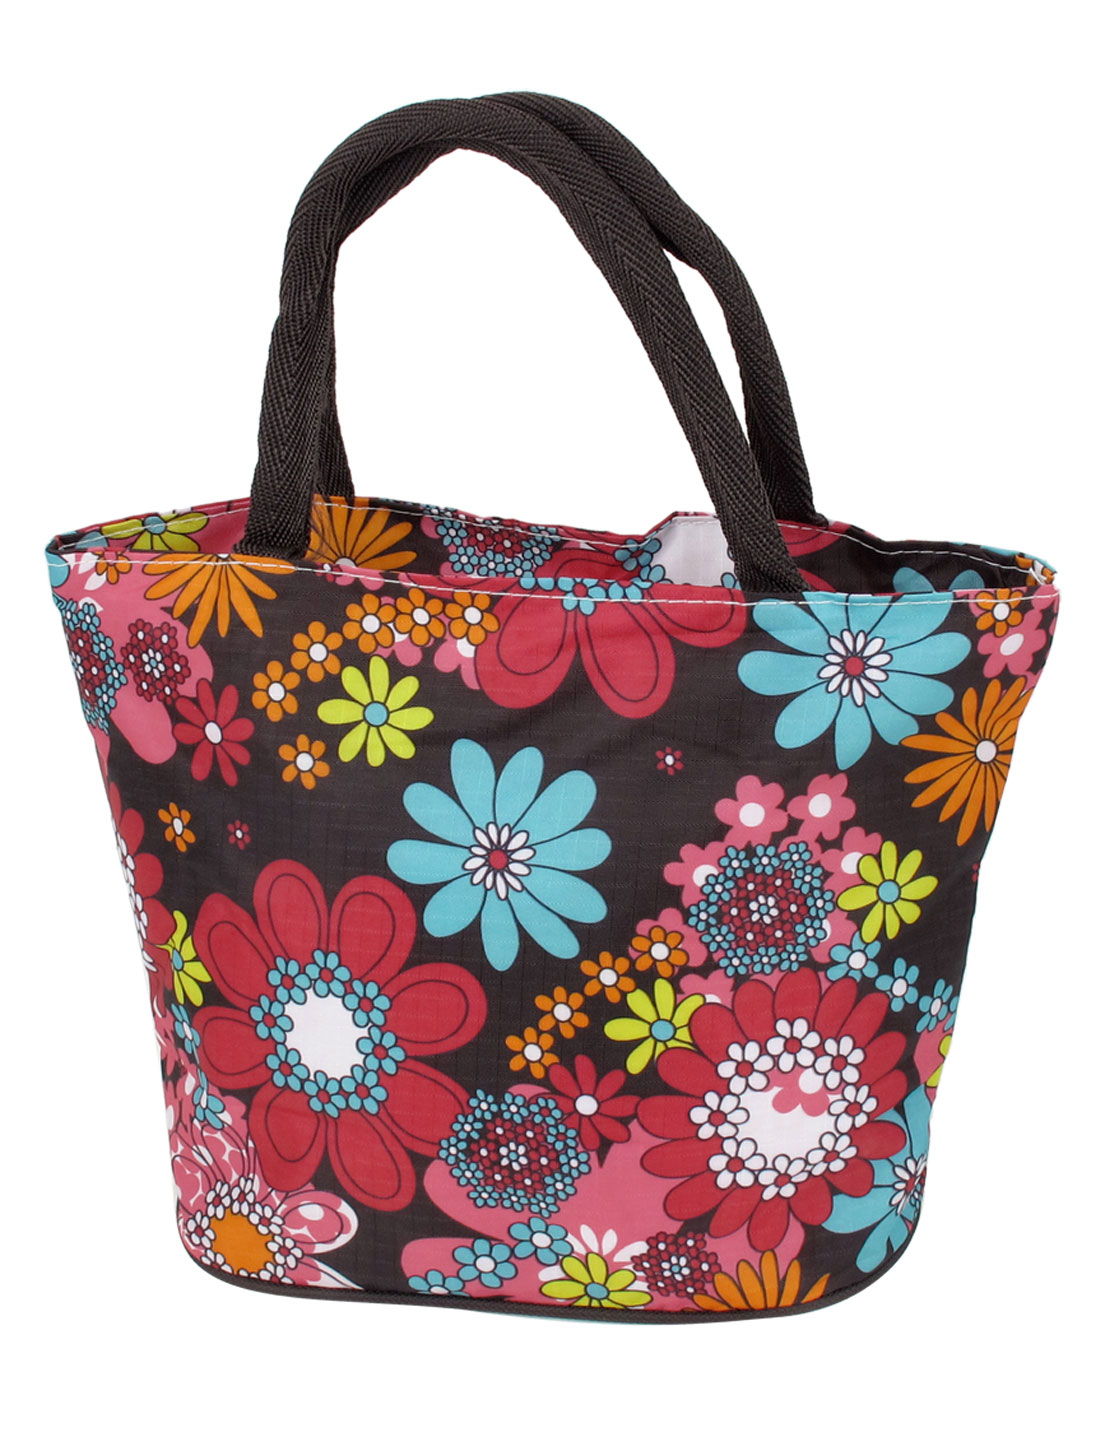 Ladies Floral Pattern Oxford Cloth Nylon Lining Zippered Handbag Tote Bag